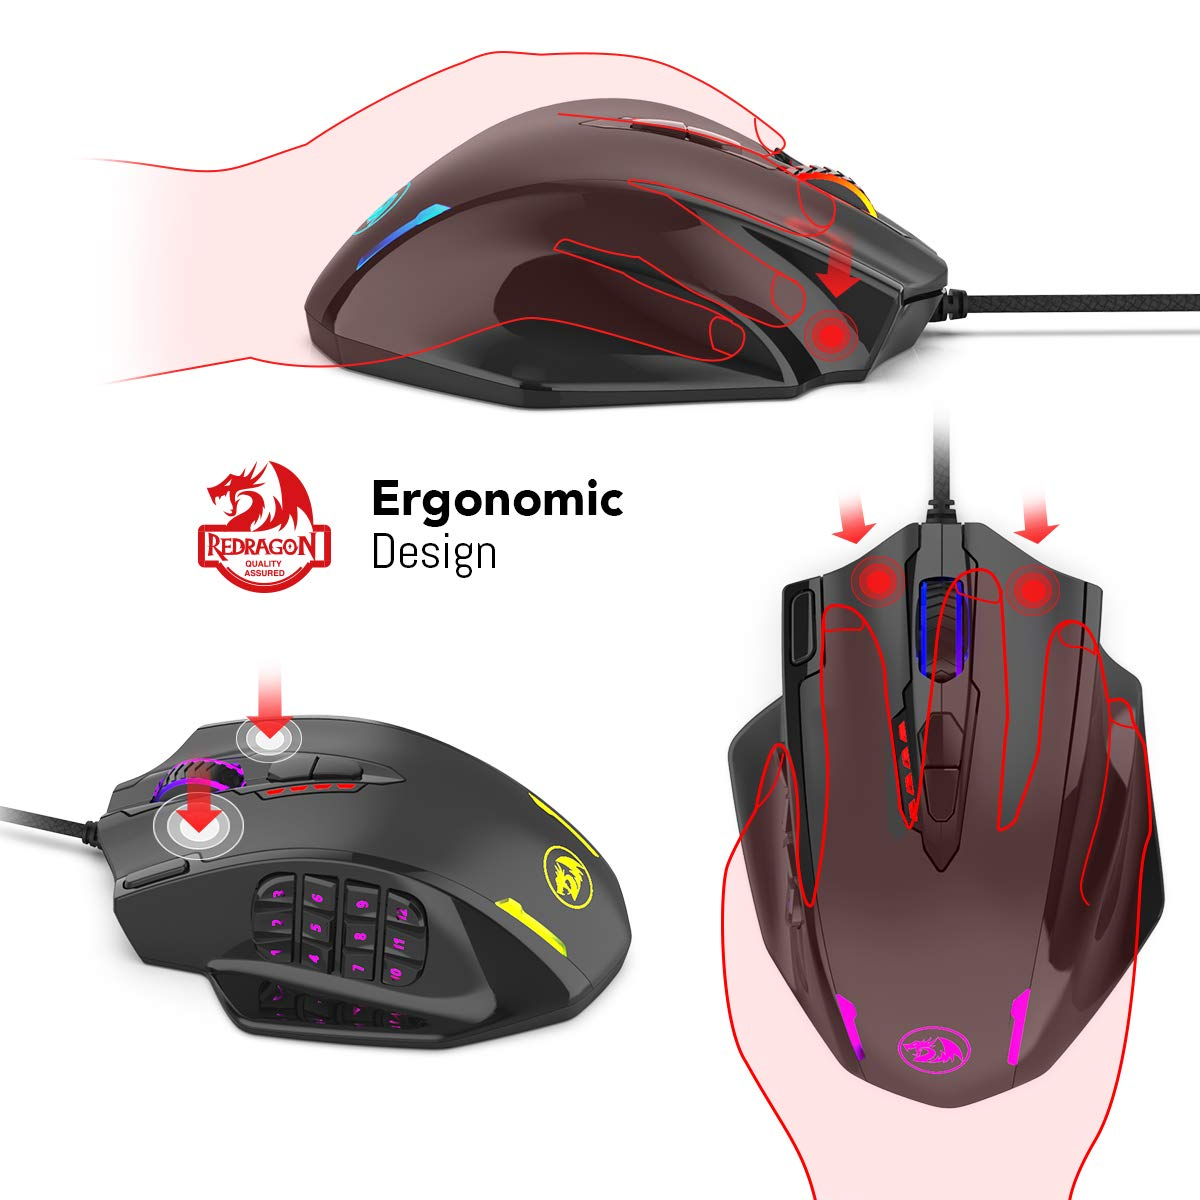 Redragon Impact RGB LED MMO Mouse with Side Buttons Laser Wired Gaming Mouse with 12,400DPI, High Precision, 19 Programmable Mouse Buttons by Redragon (Image #5)